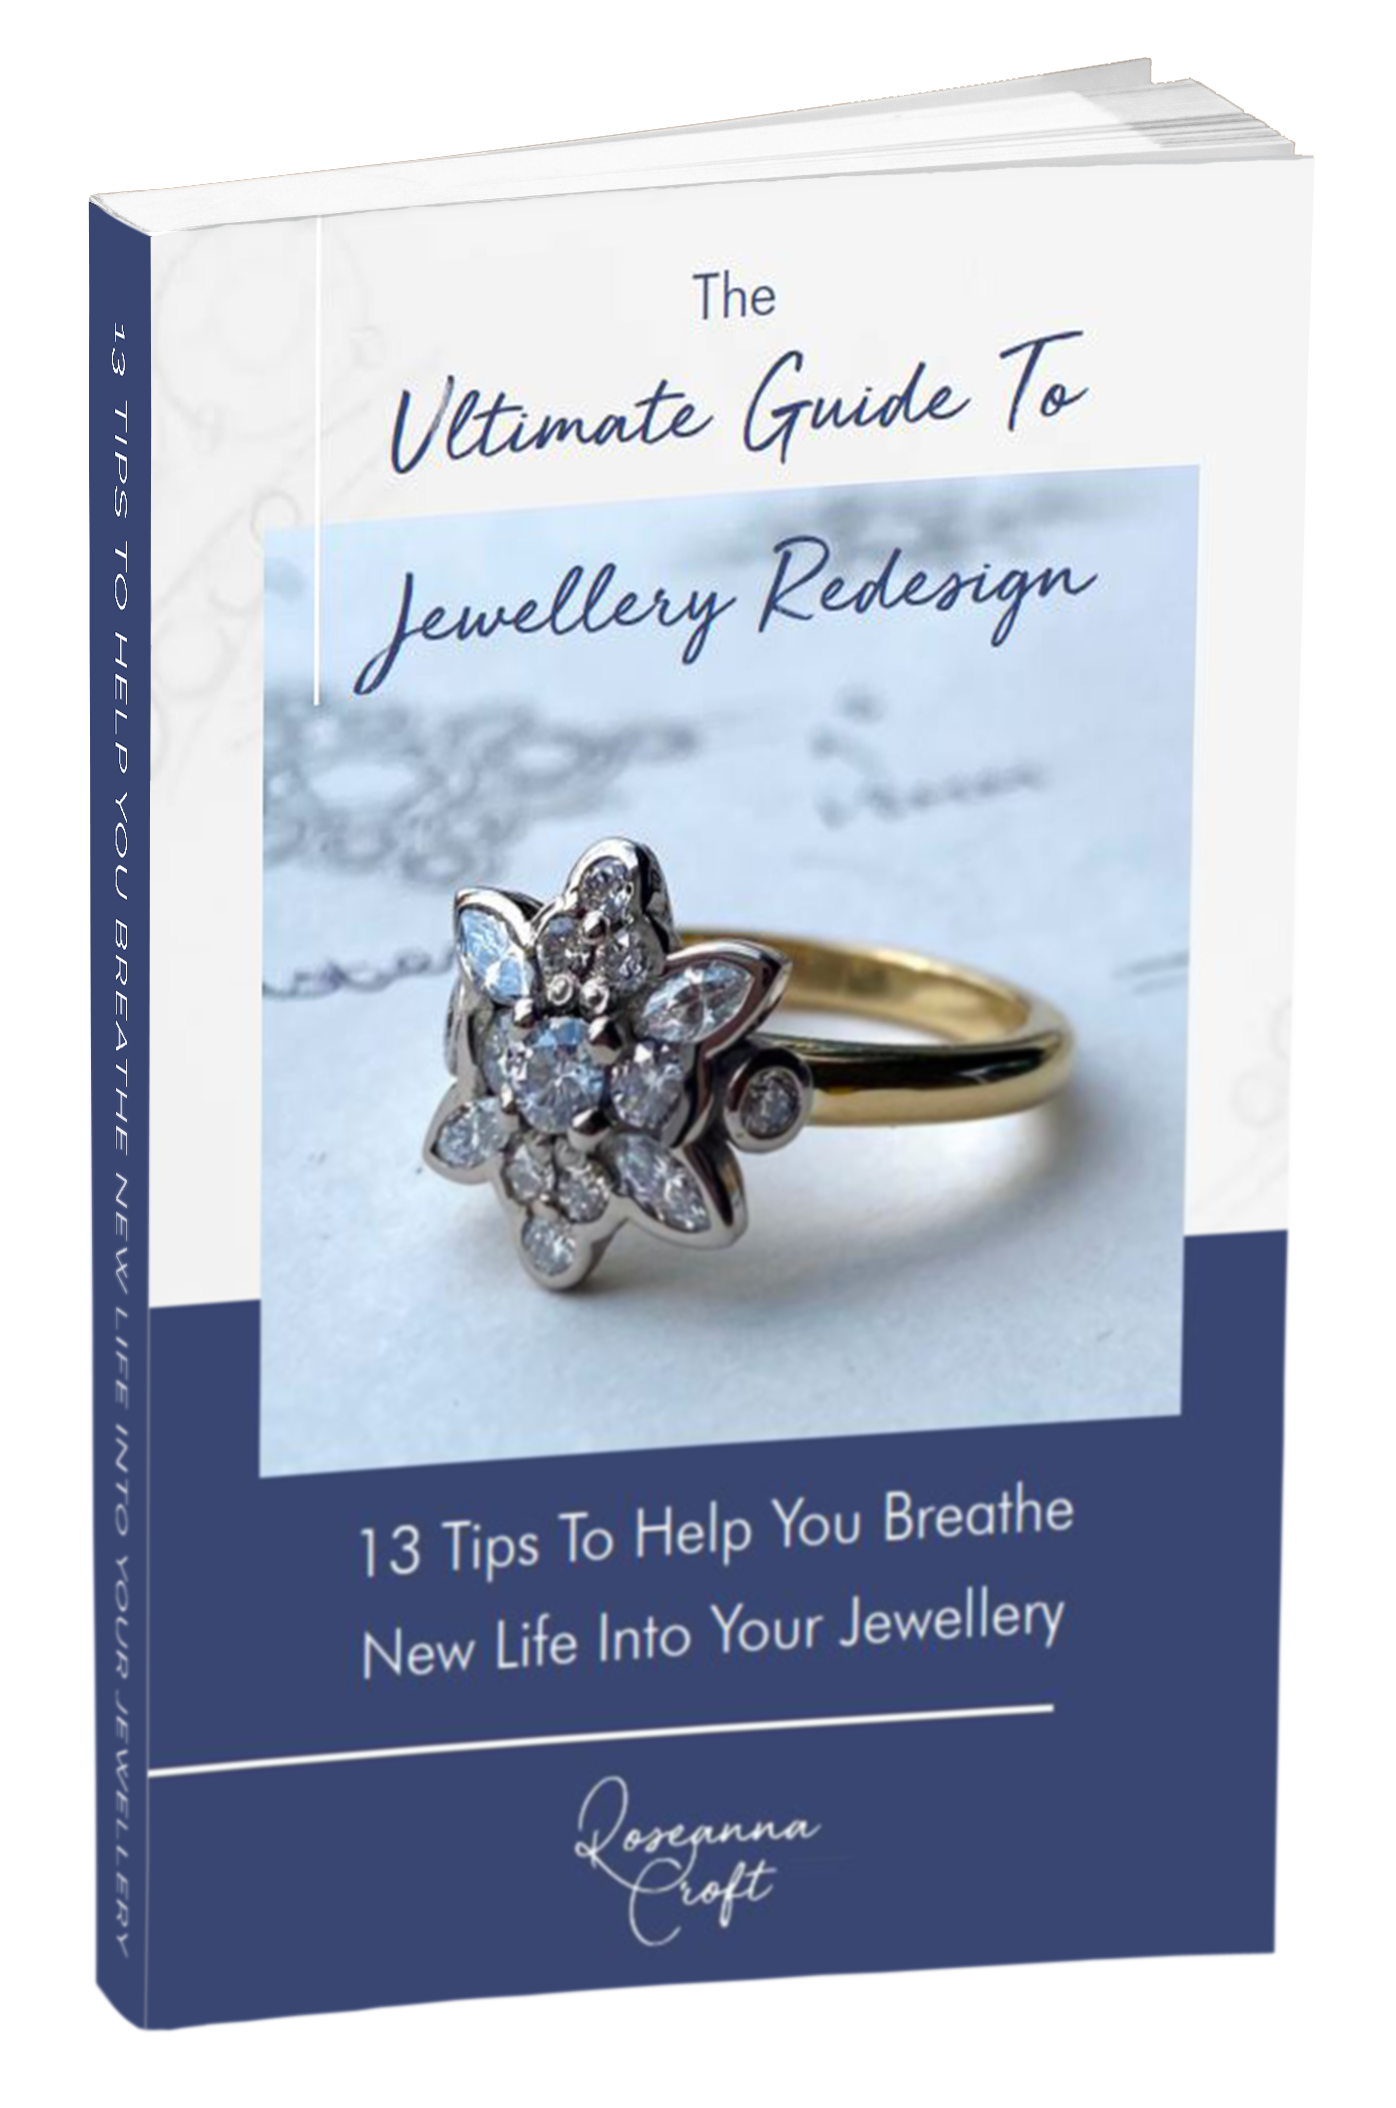 breathe-new-life-into-jewellery-roseanna-guide-mock-up